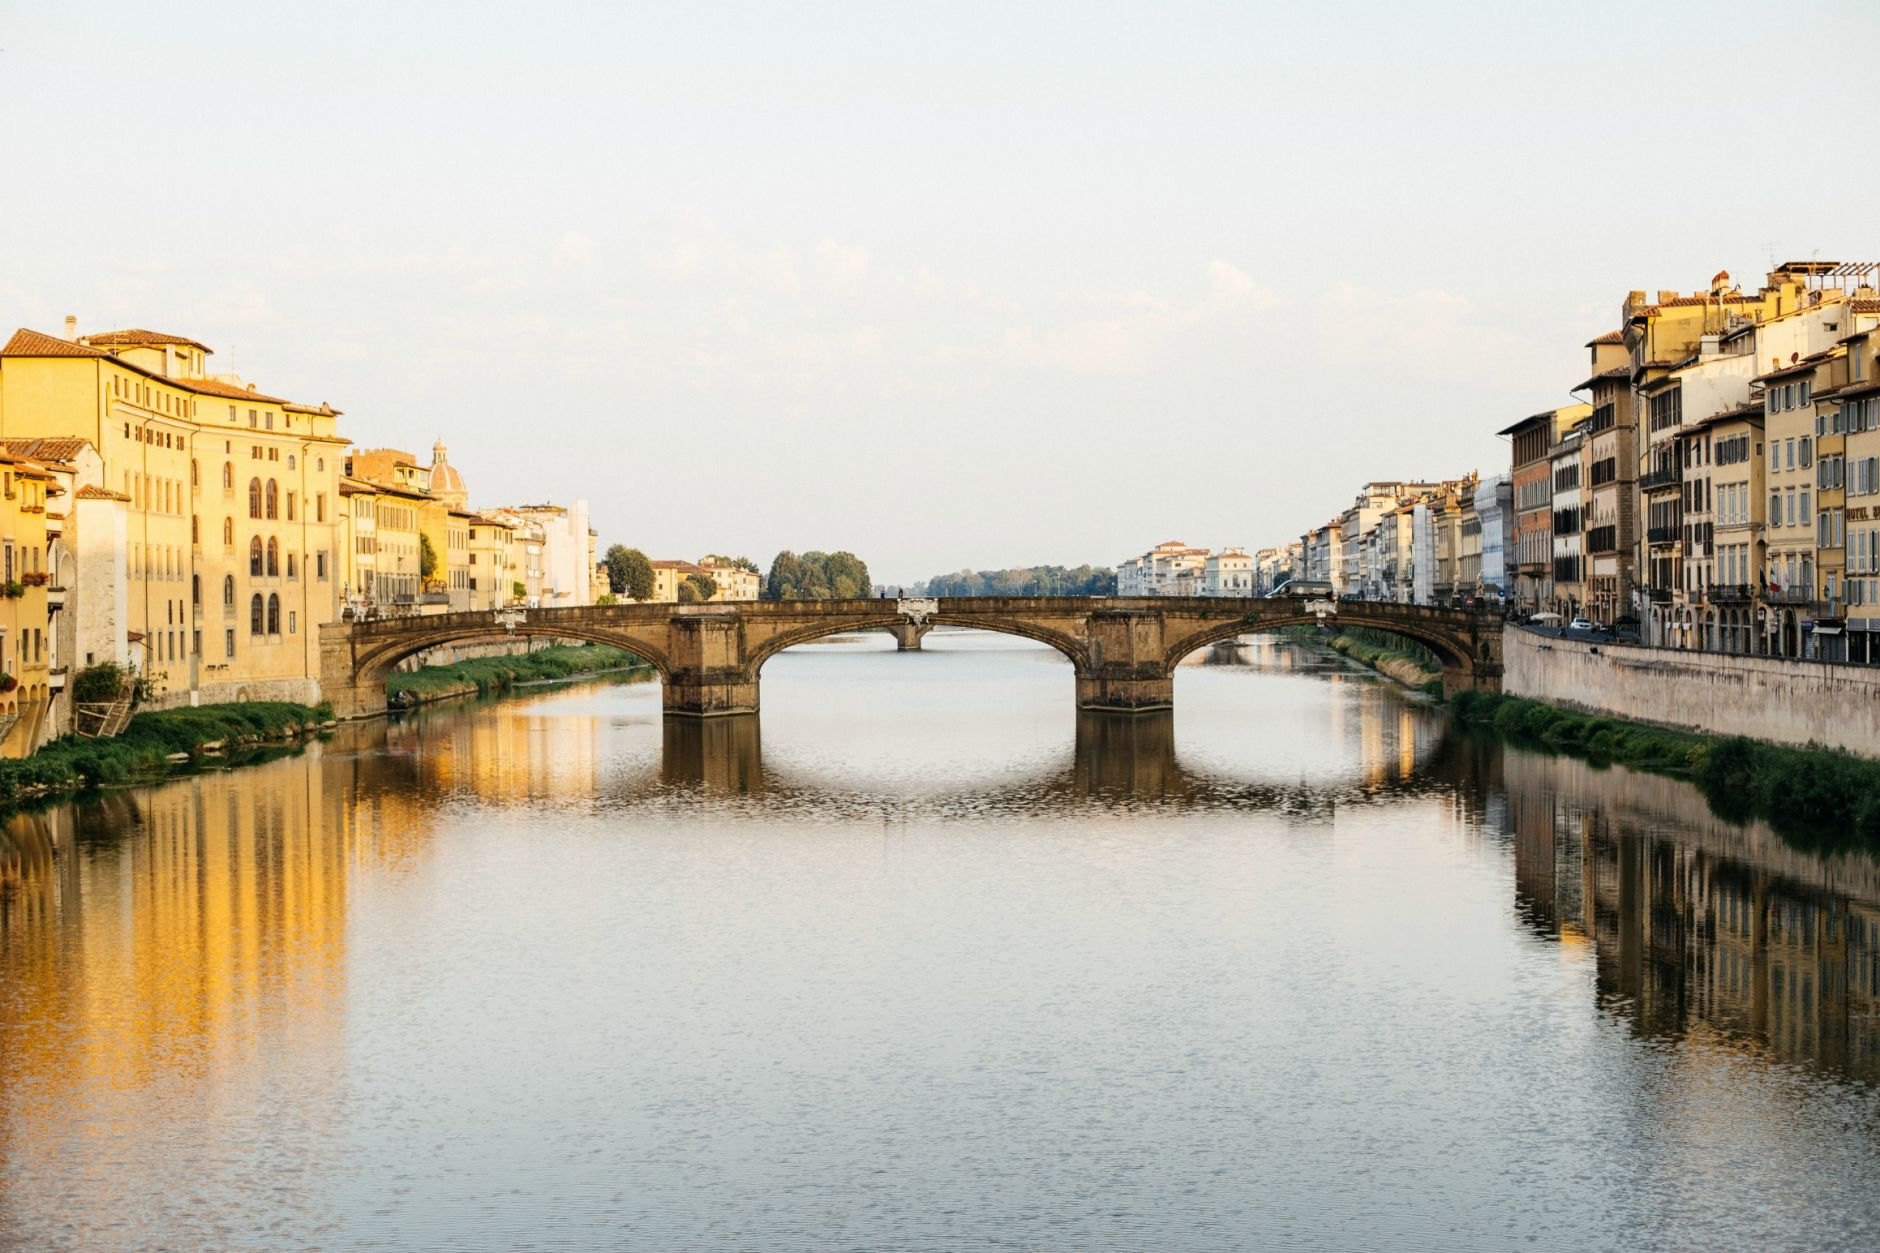 sunrise-sunset-firenze-glorence-italy-ponte-vecchio-bridge-summer-2016-disi-couture-02